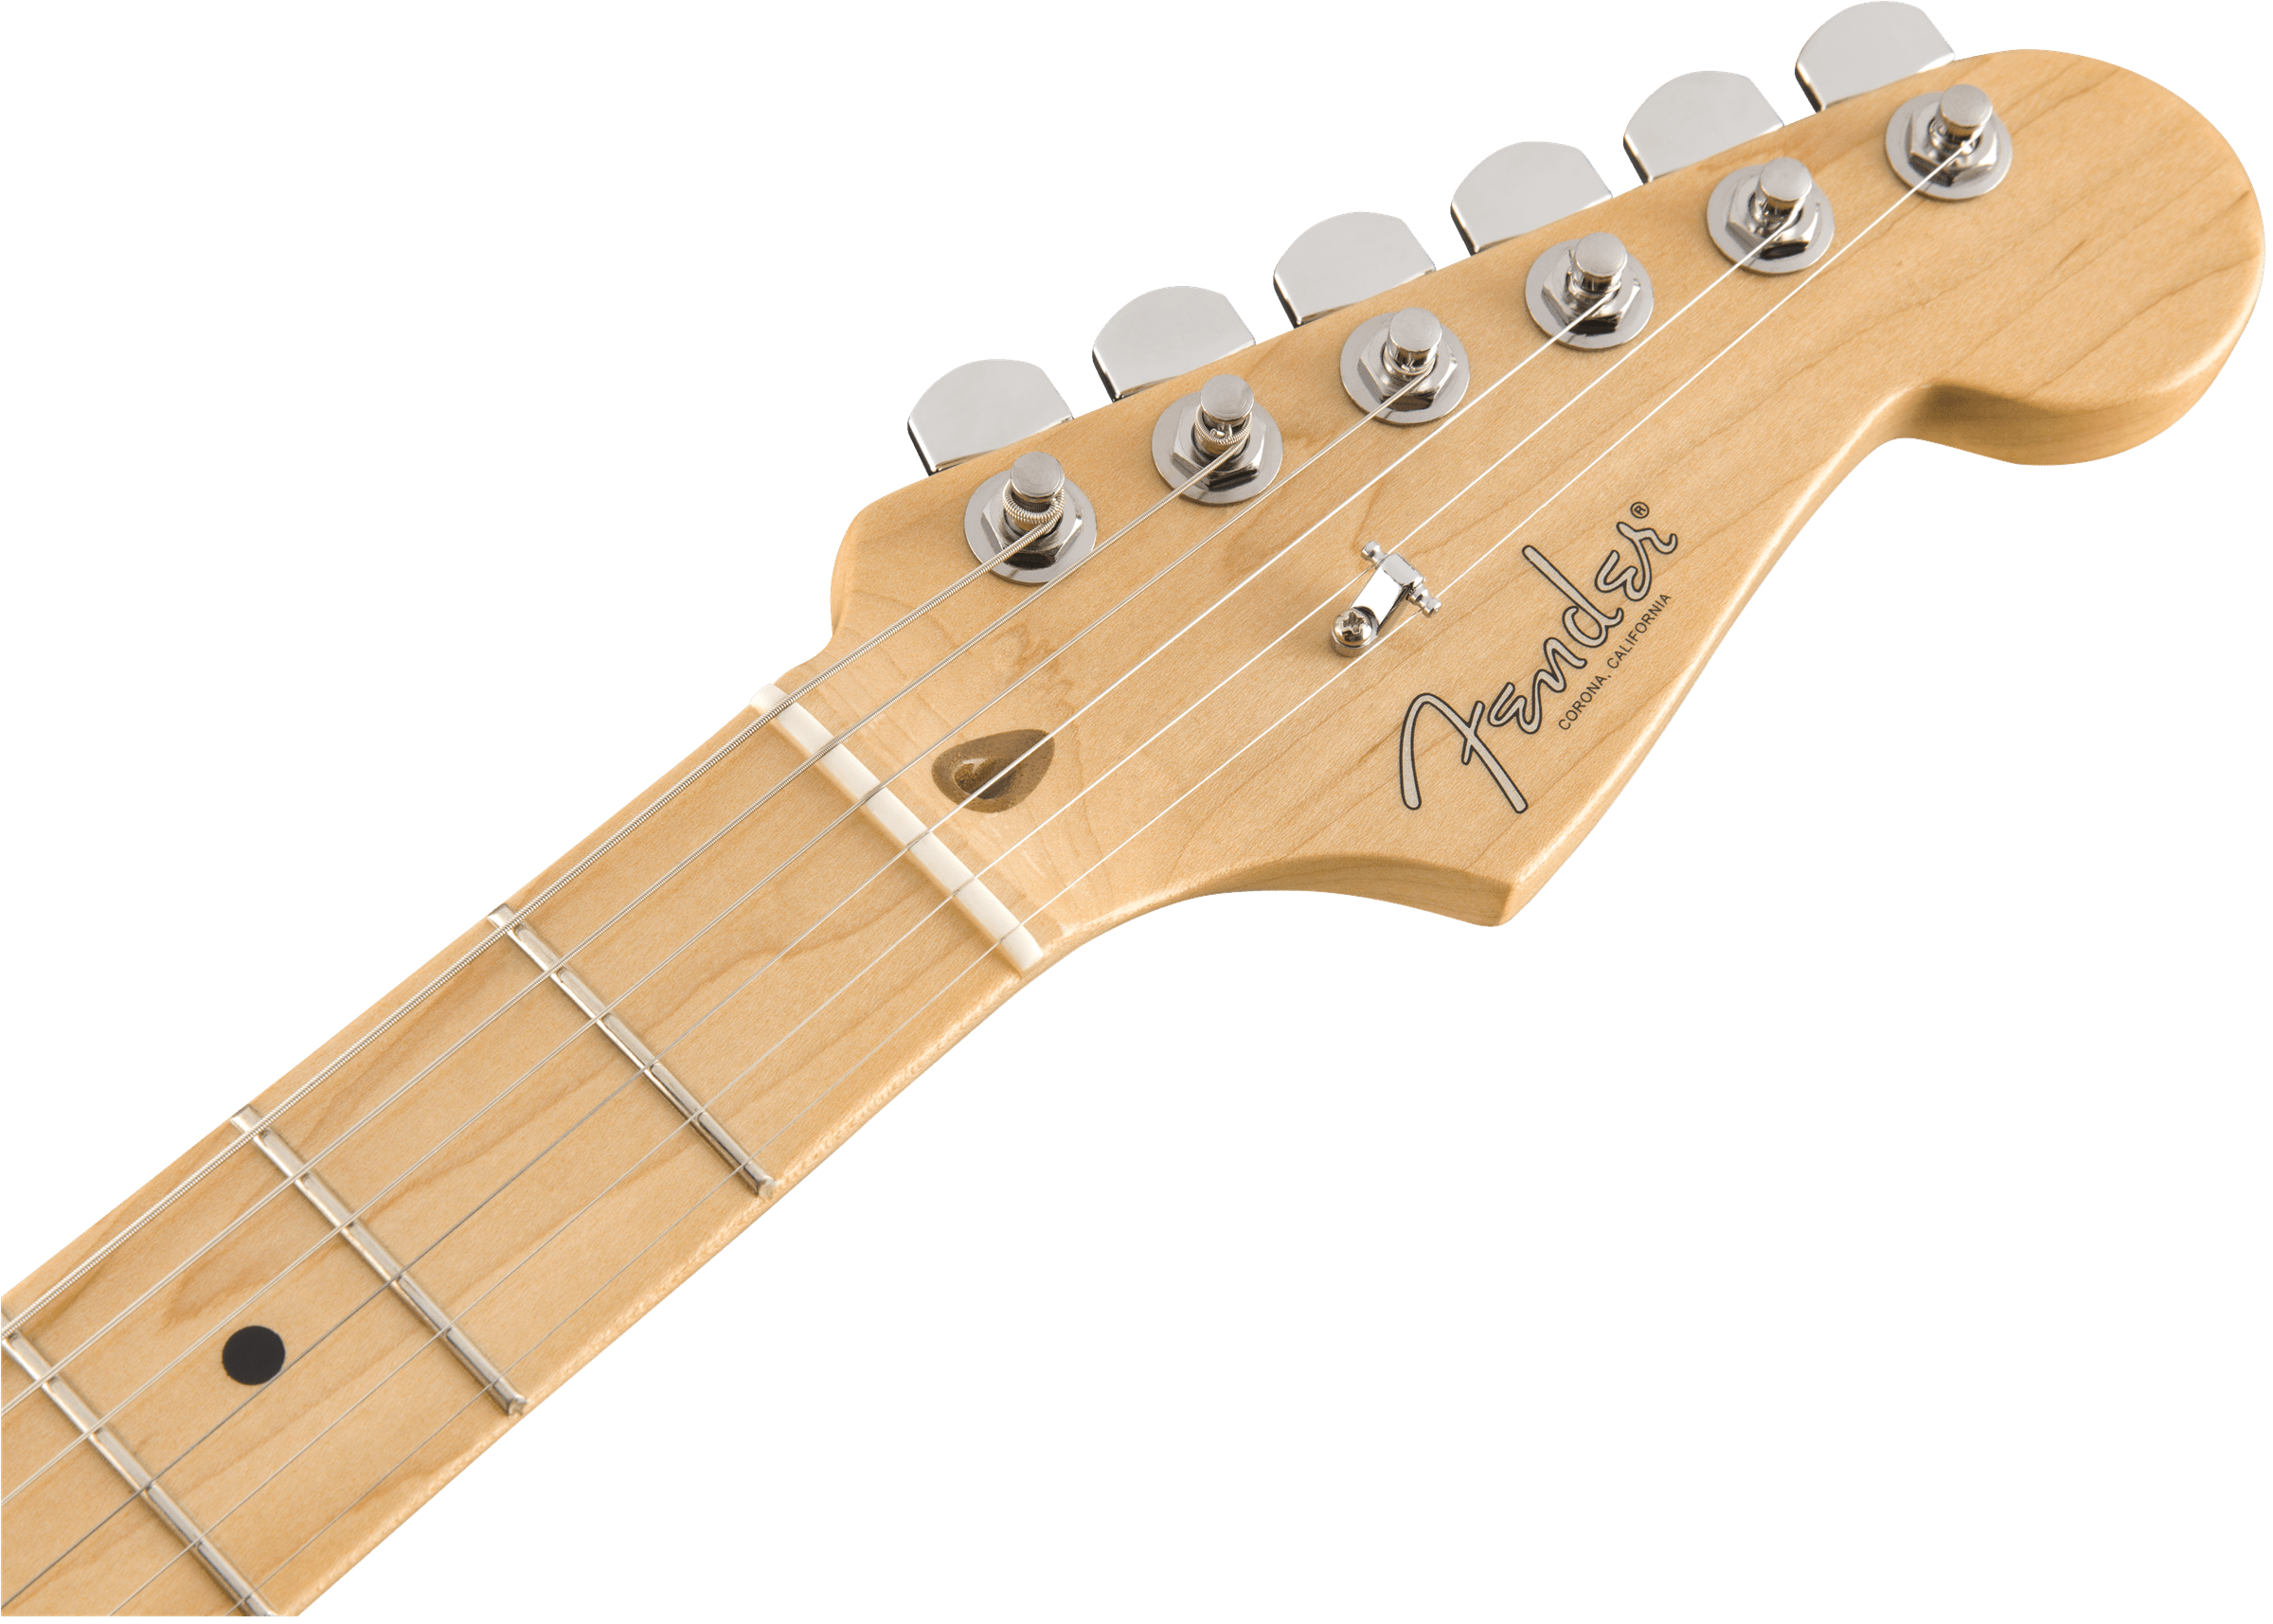 715c2c5ea7f Fender LIMITED EDITION STRATOCASTER TELECASTER HYBRID ELECTRIC ...